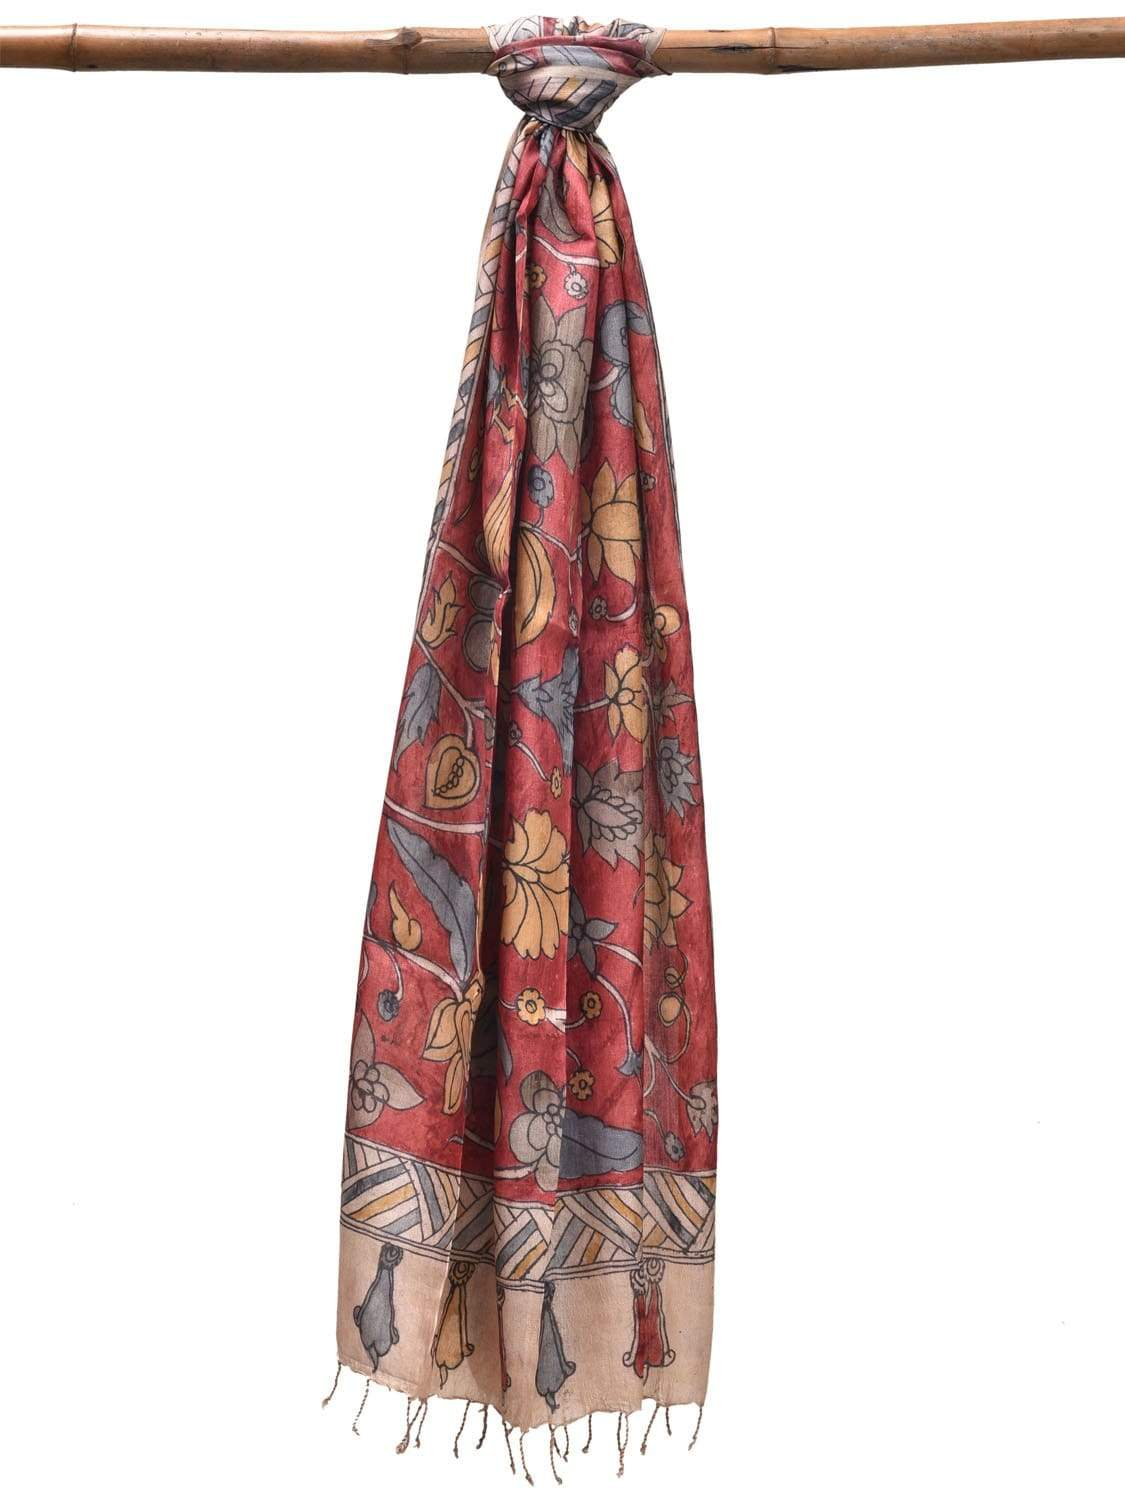 Red Kalamkari Hand Painted Tussar Dupatta with Floral and Birds Design ds1905